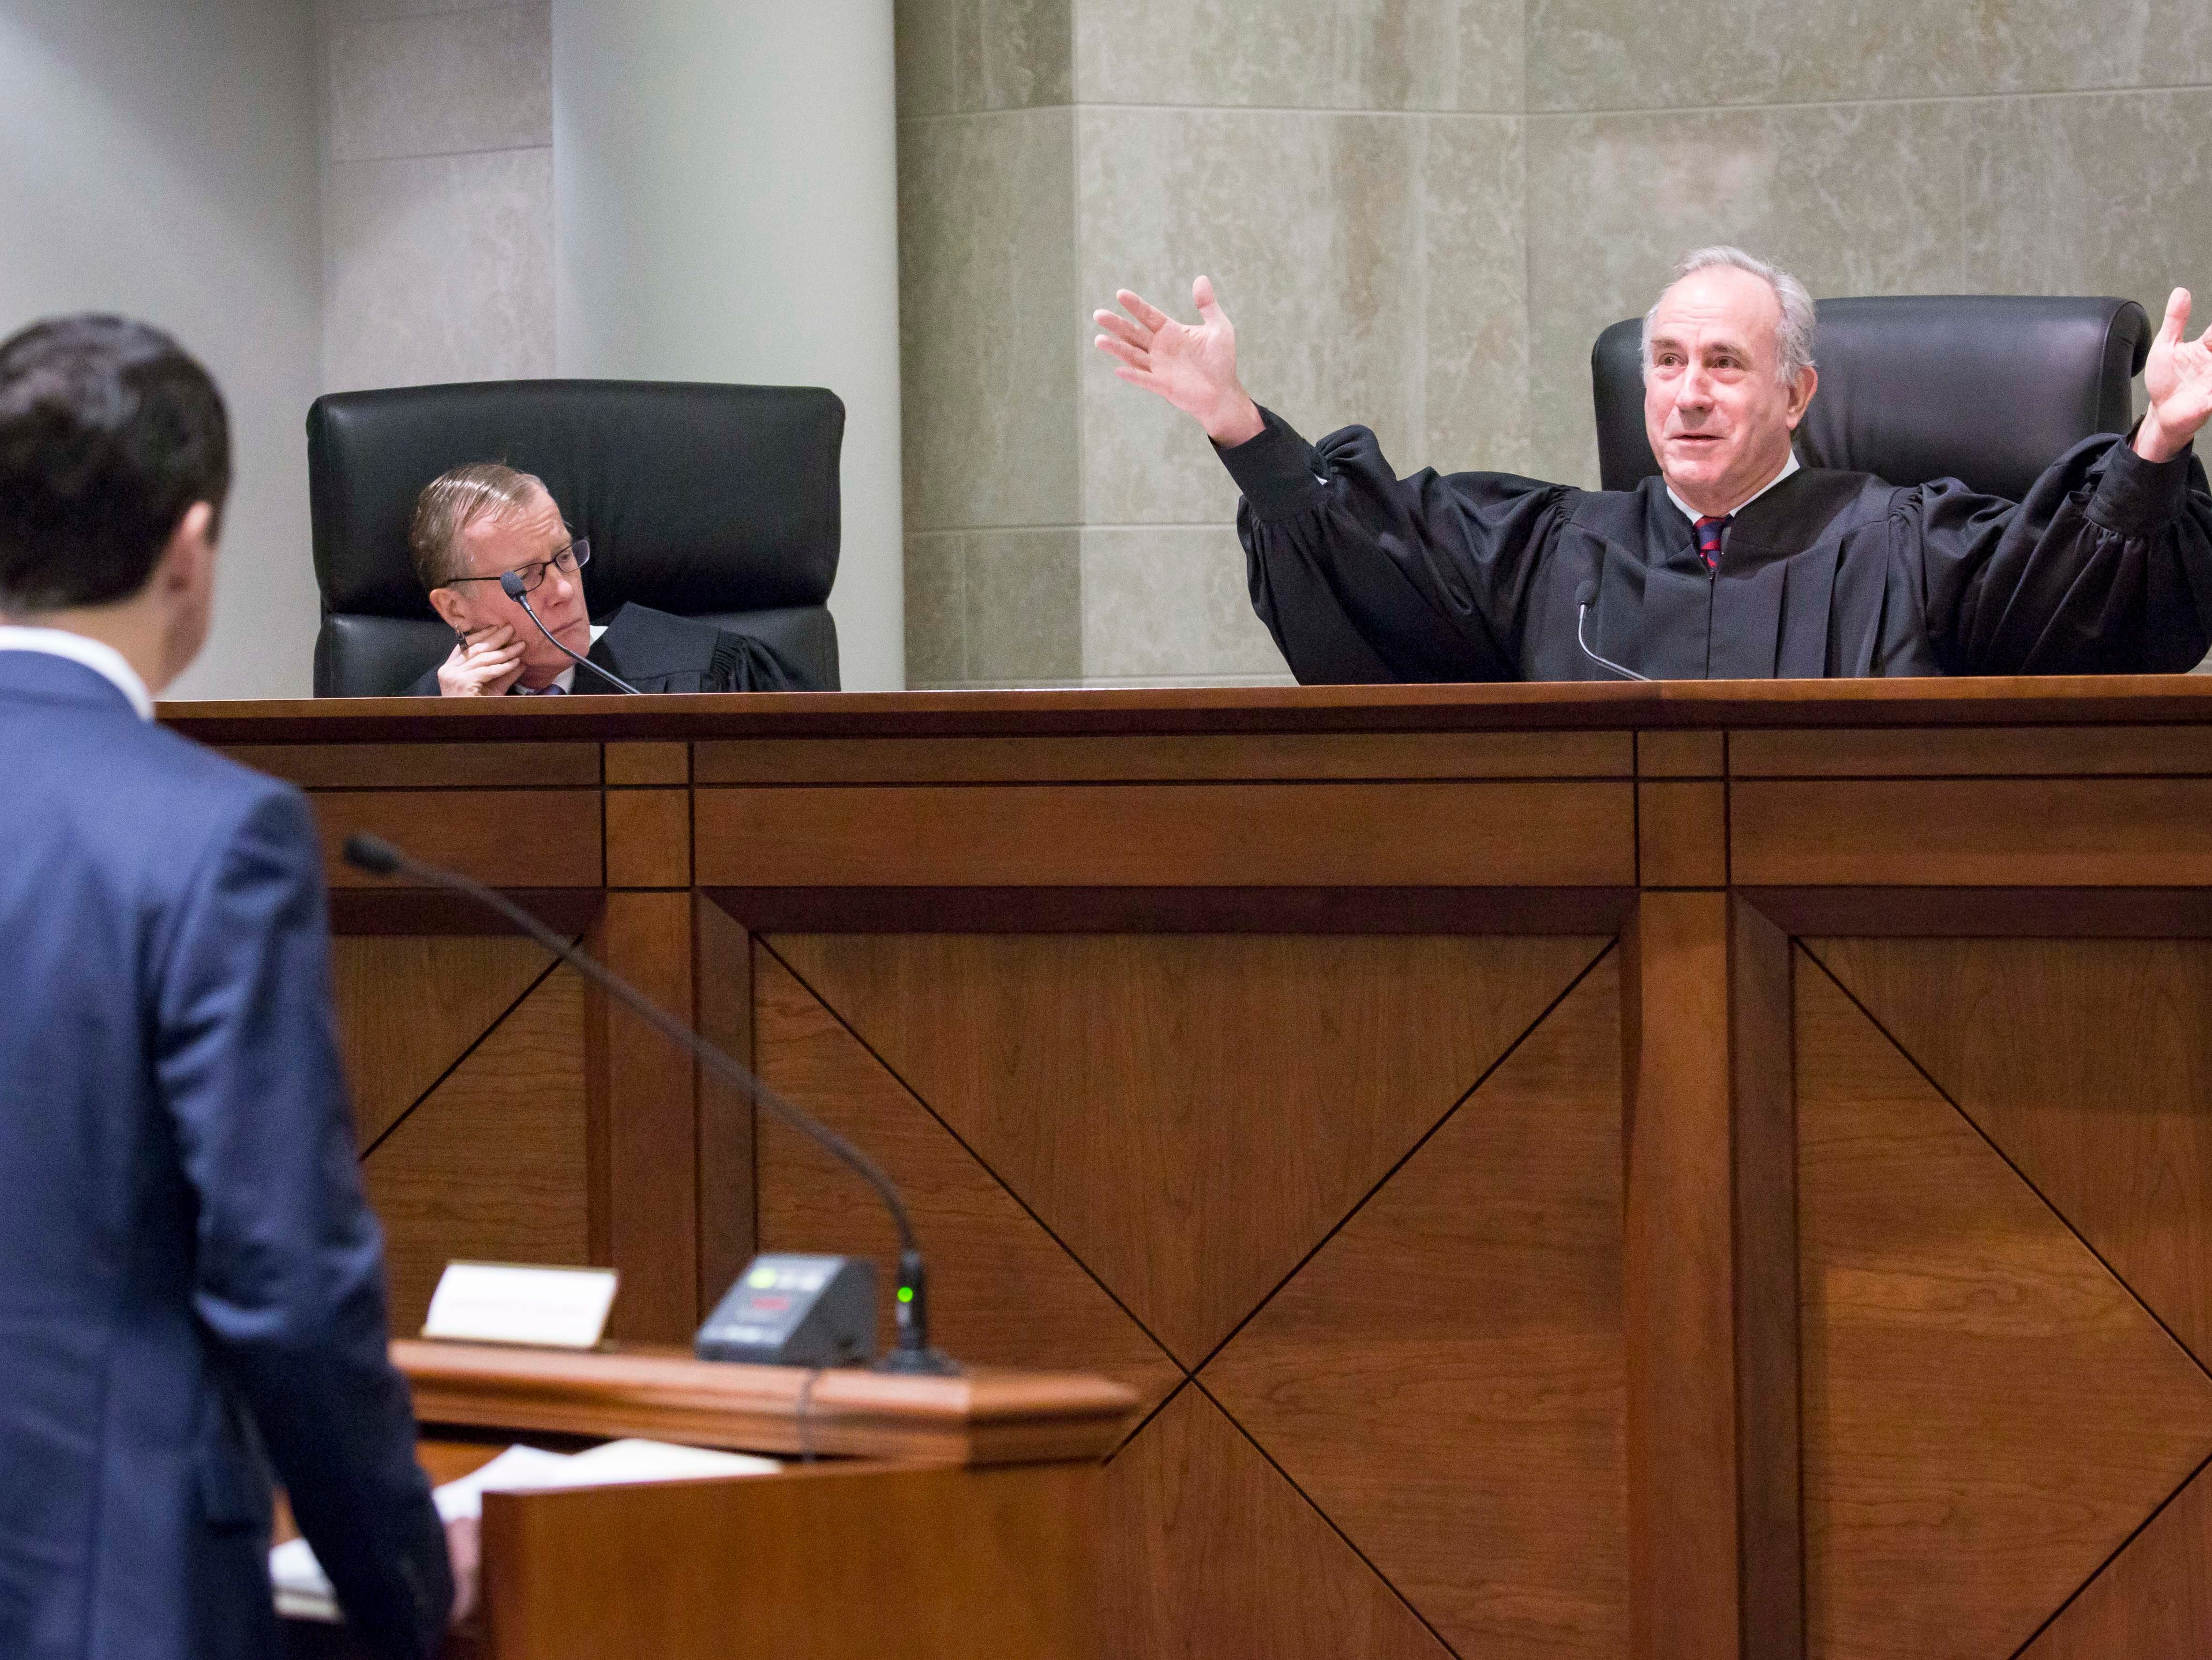 Justice Brent R. Appel talks to attorneys at the Iowa Supreme Court as they hear arguments in two challenges to Iowa's collective bargaining law change last year. The challenges are from AFSCME and the Iowa State Education Association at the Judicial Building Wednesday, Dec. 12, 2018, in Des Moines, Iowa.